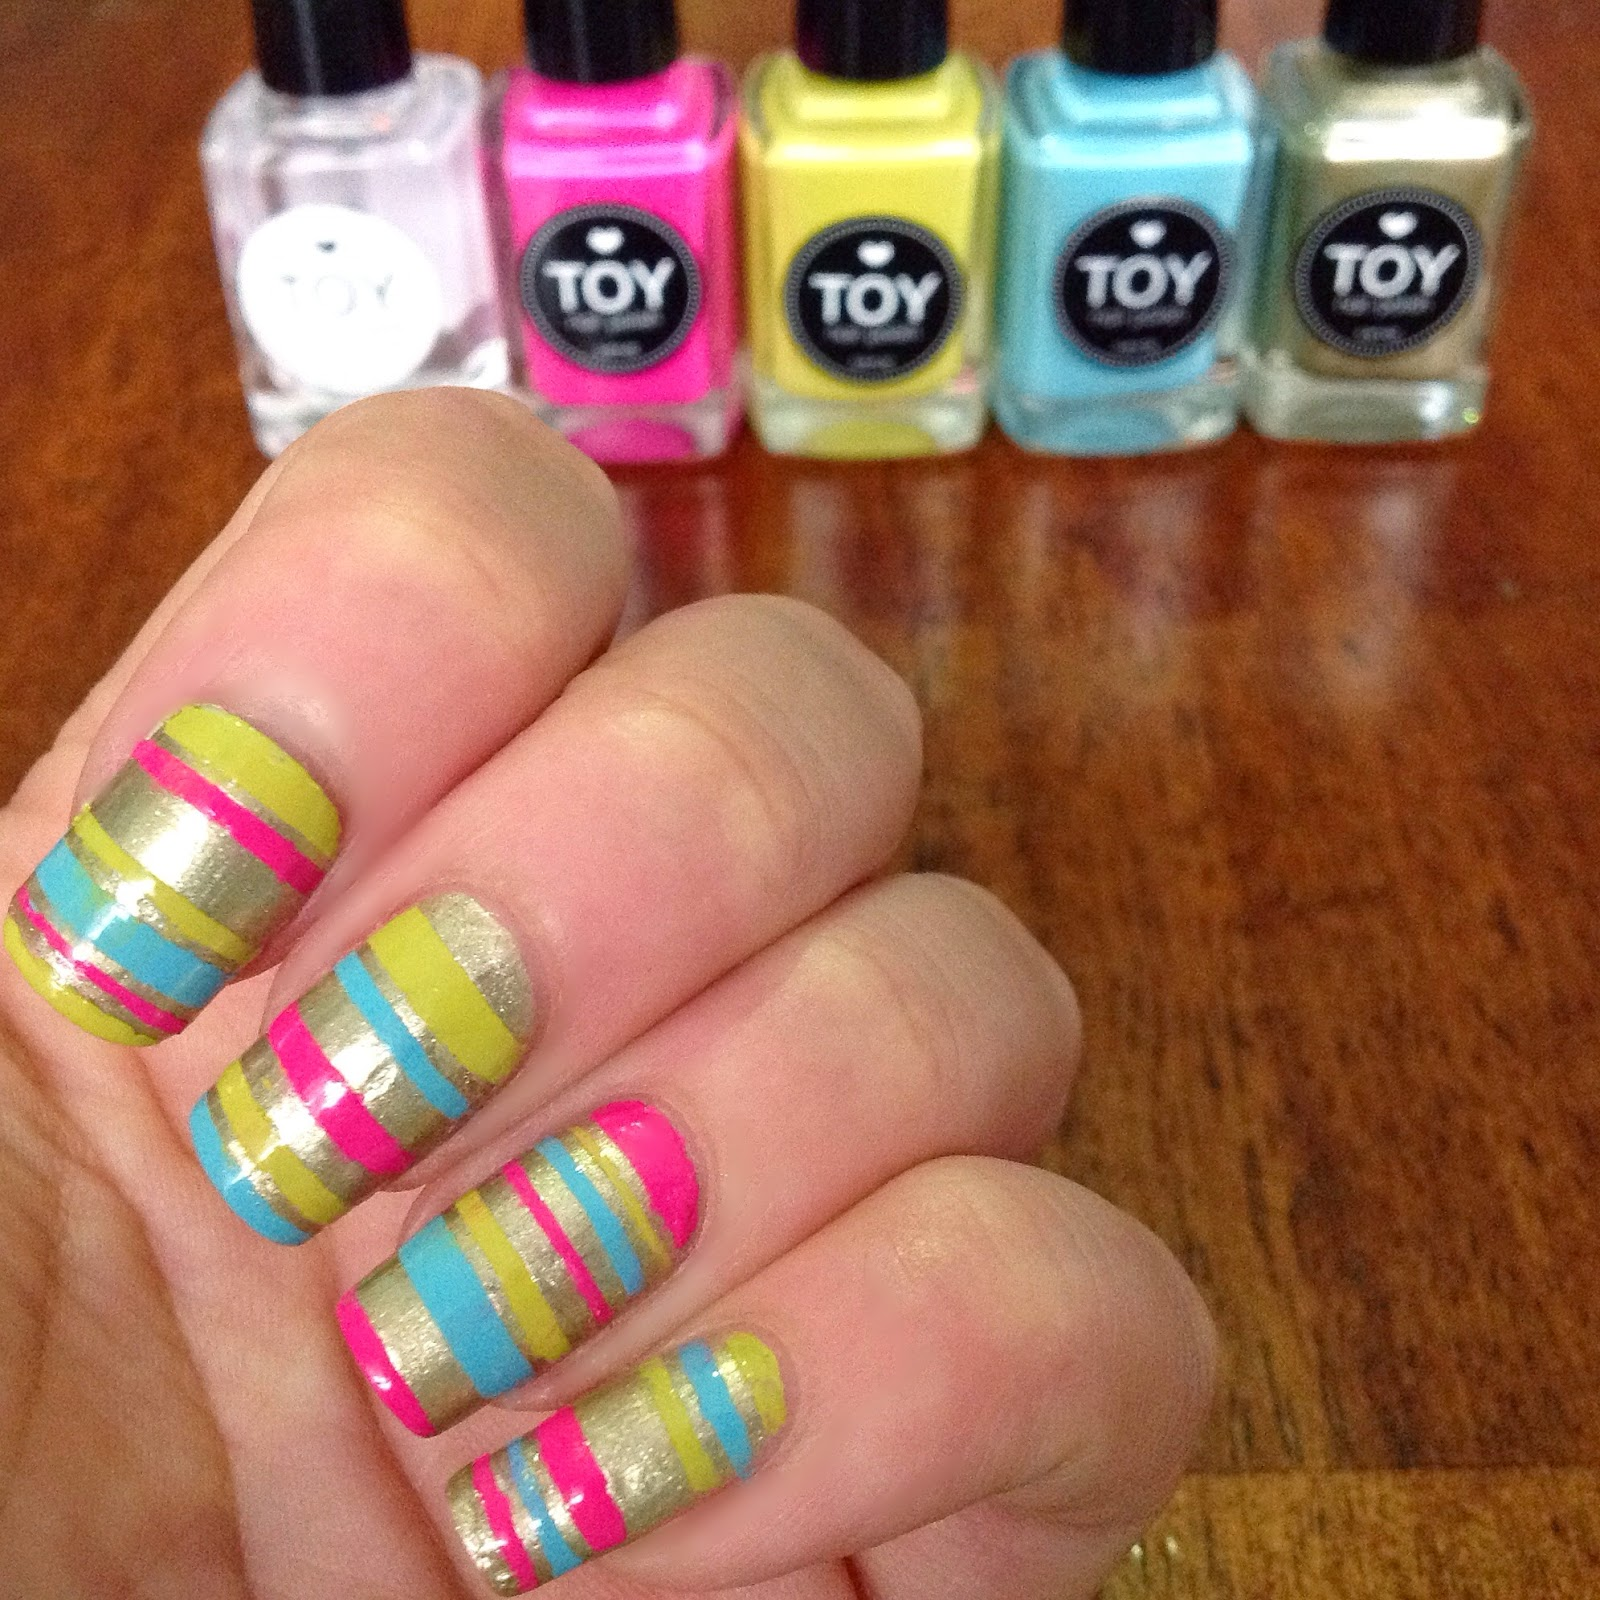 Don's Nail OBSESSION!: TOY NAIL POLISH